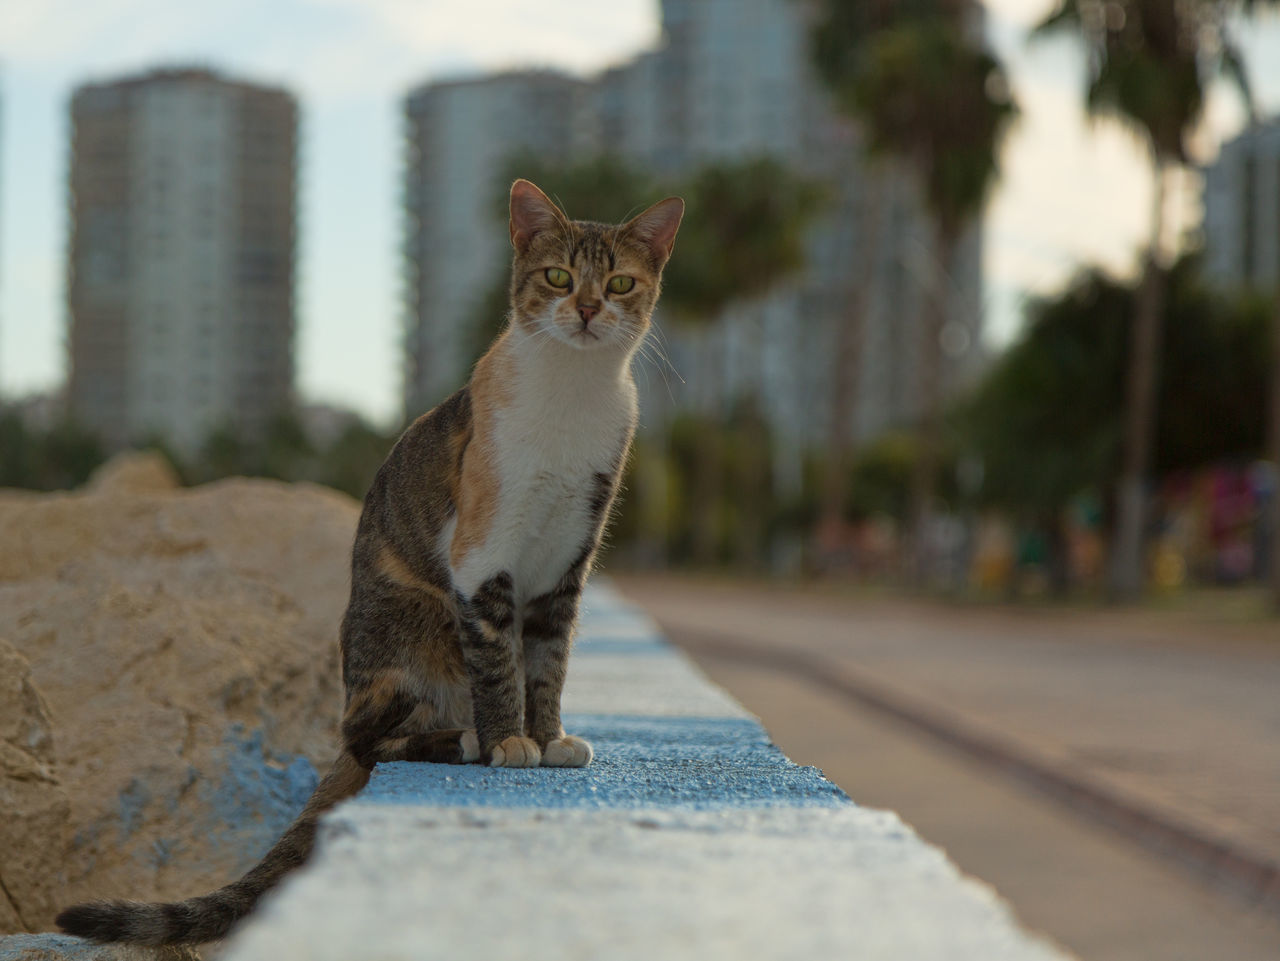 Street Cats Animal Themes Boulder Cats Coastline Day Domestic Animals Domestic Cat Feline Feline Portraits Mammal Mersin Turkey No People One Animal Outdoors Pets Portrait Retaining Wall Rock Formation Sky Street Cats Tabby Cat Tree